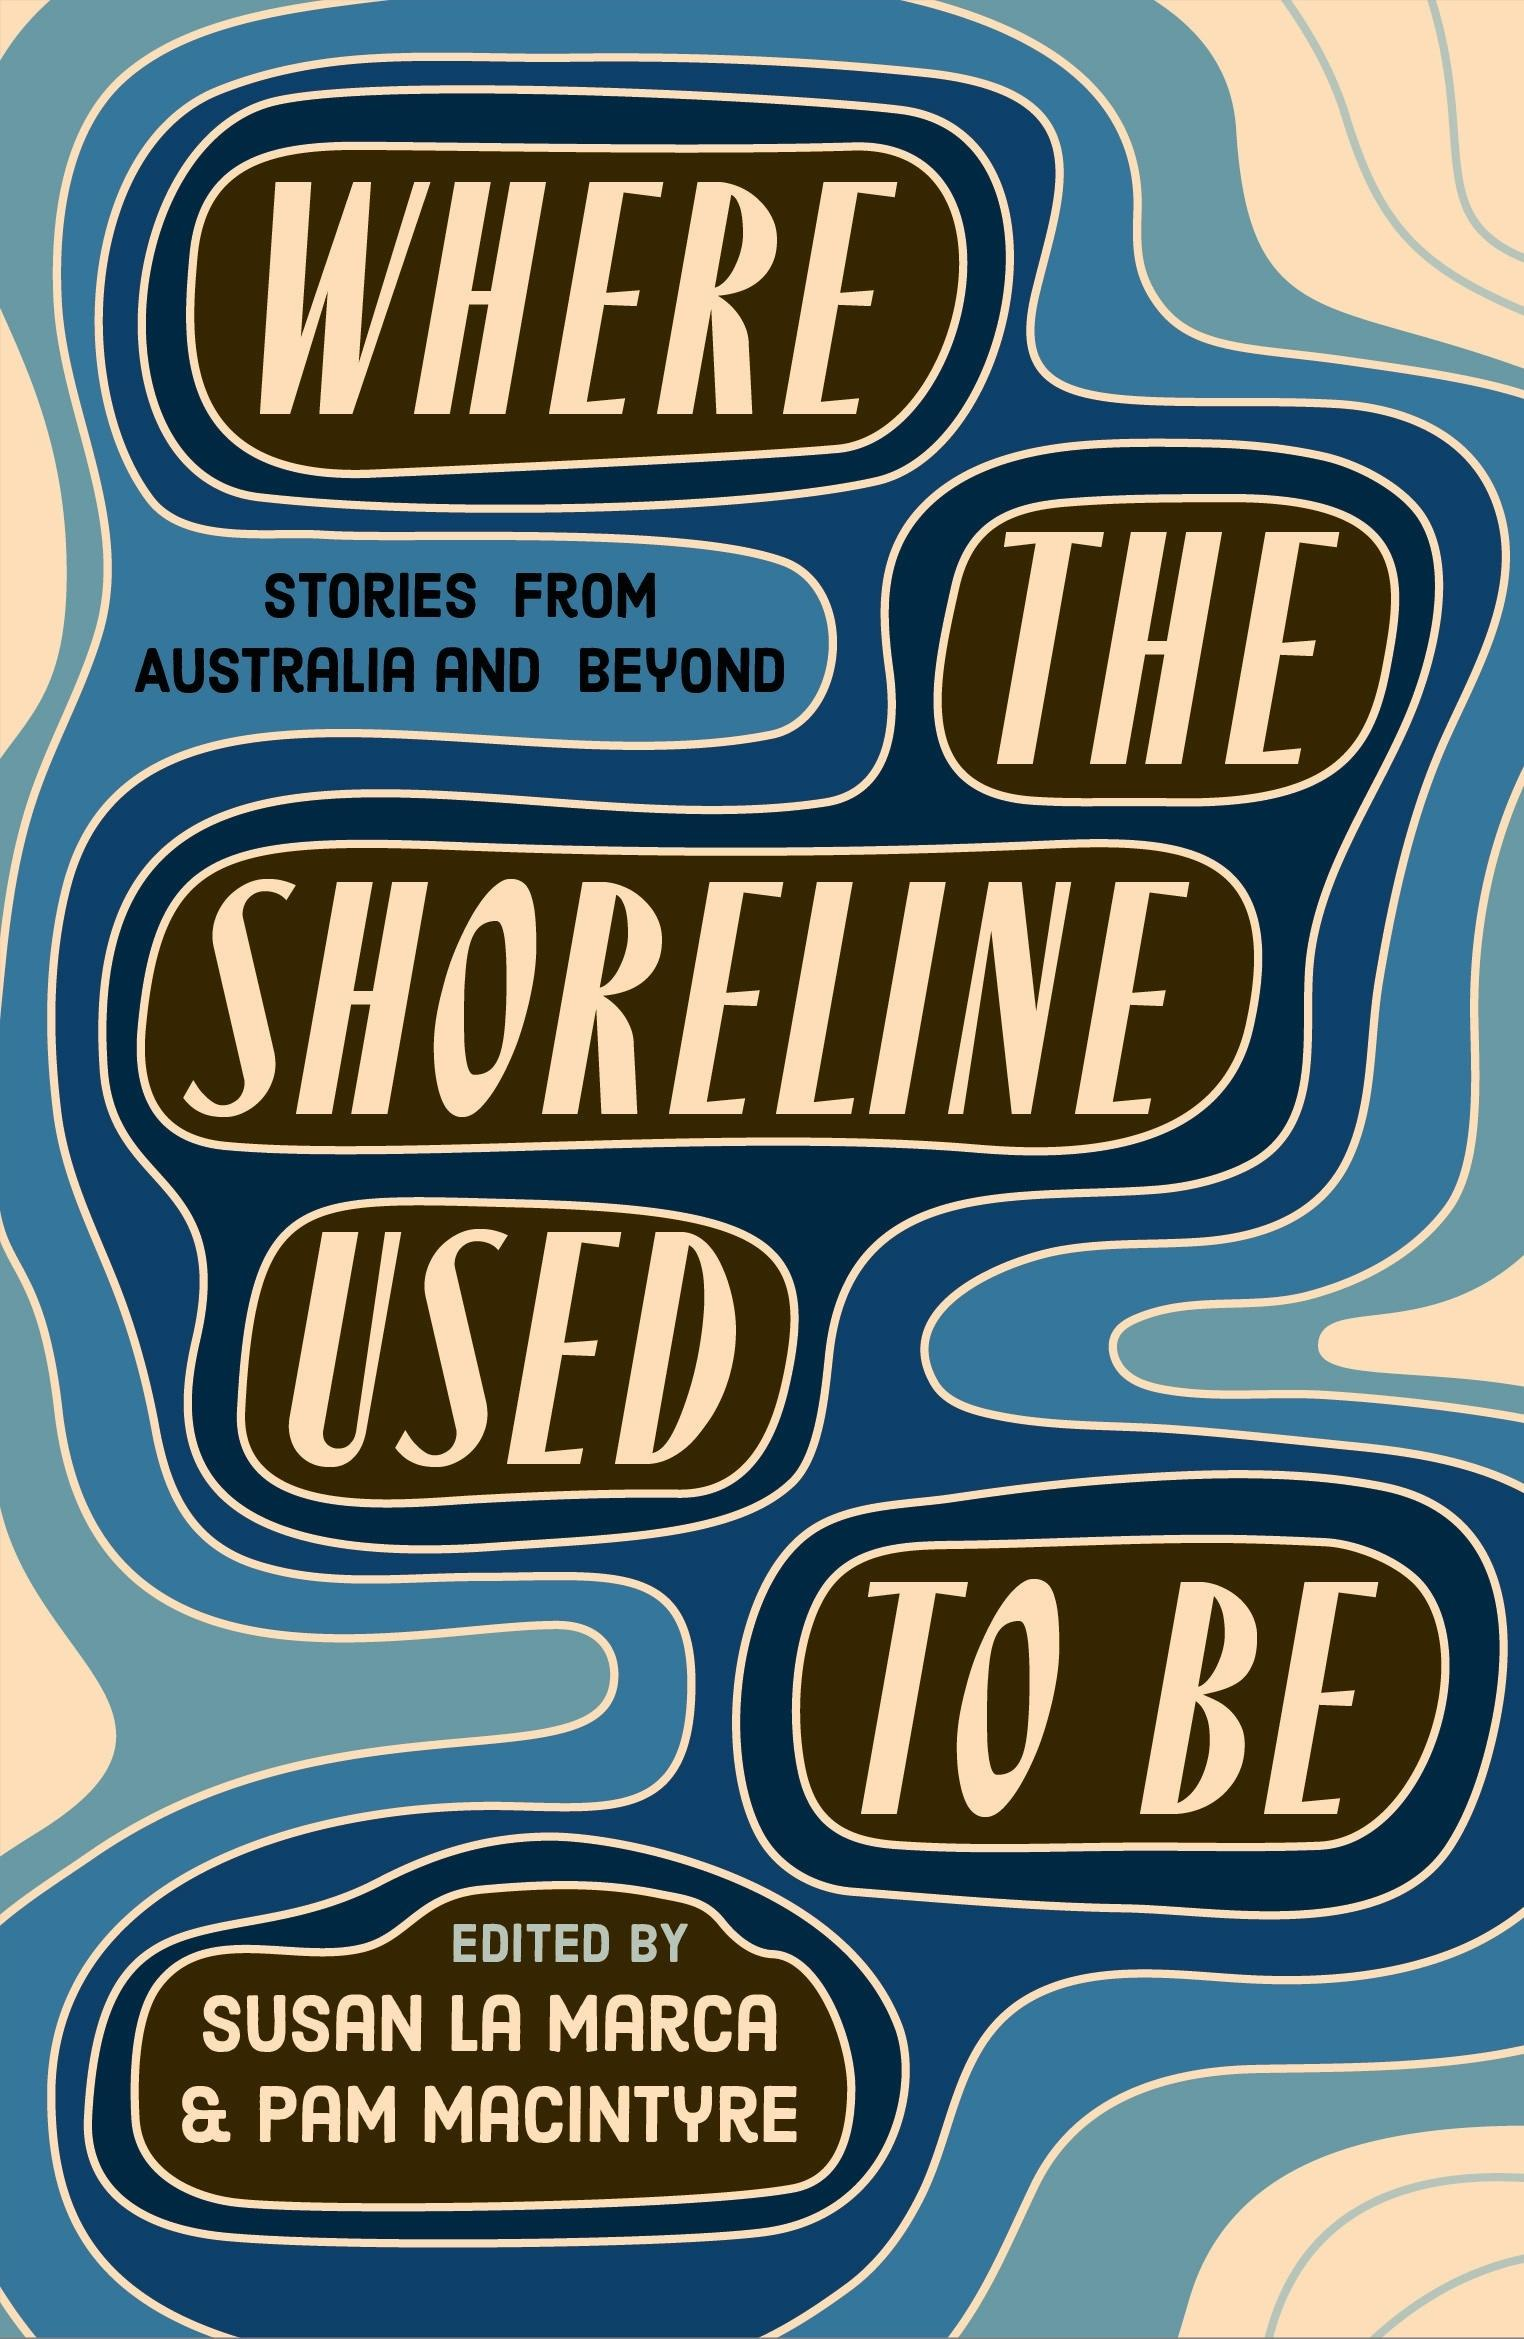 Where the Shoreline Used to Be: Stories from Australia and Beyond